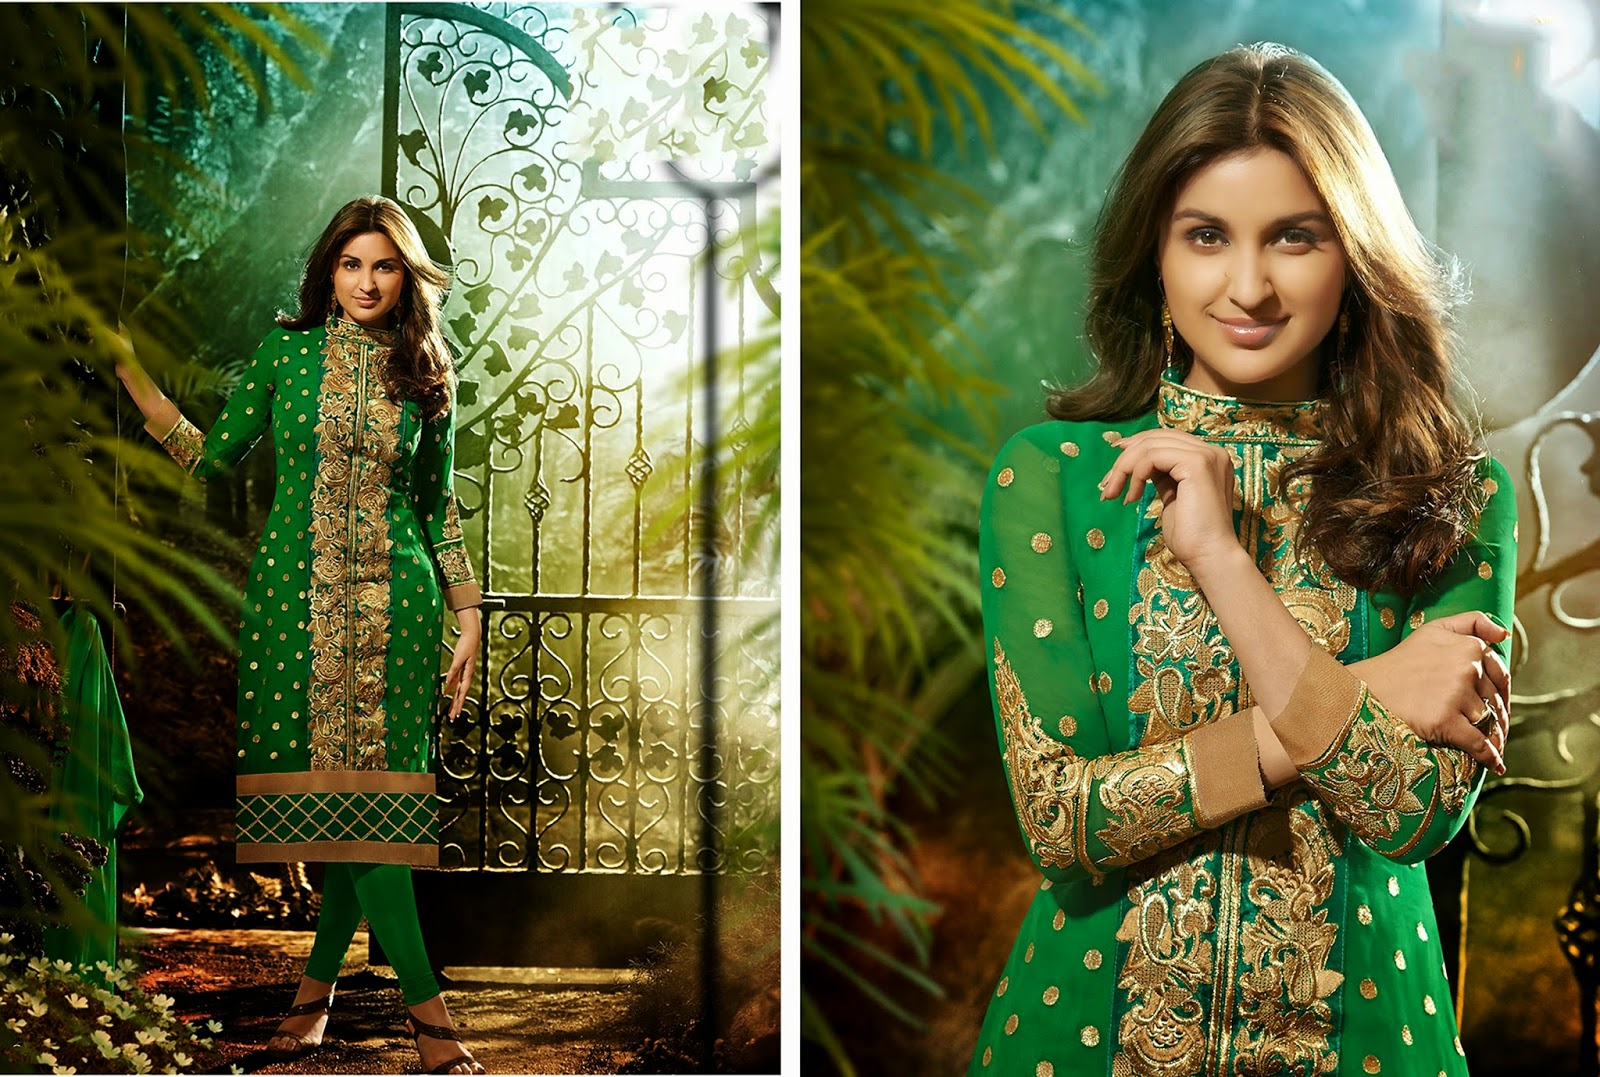 parineeti chopra georgette anarkali wallpapers - Parineeti Chopra Georgette Anarkali Wallpapers HD